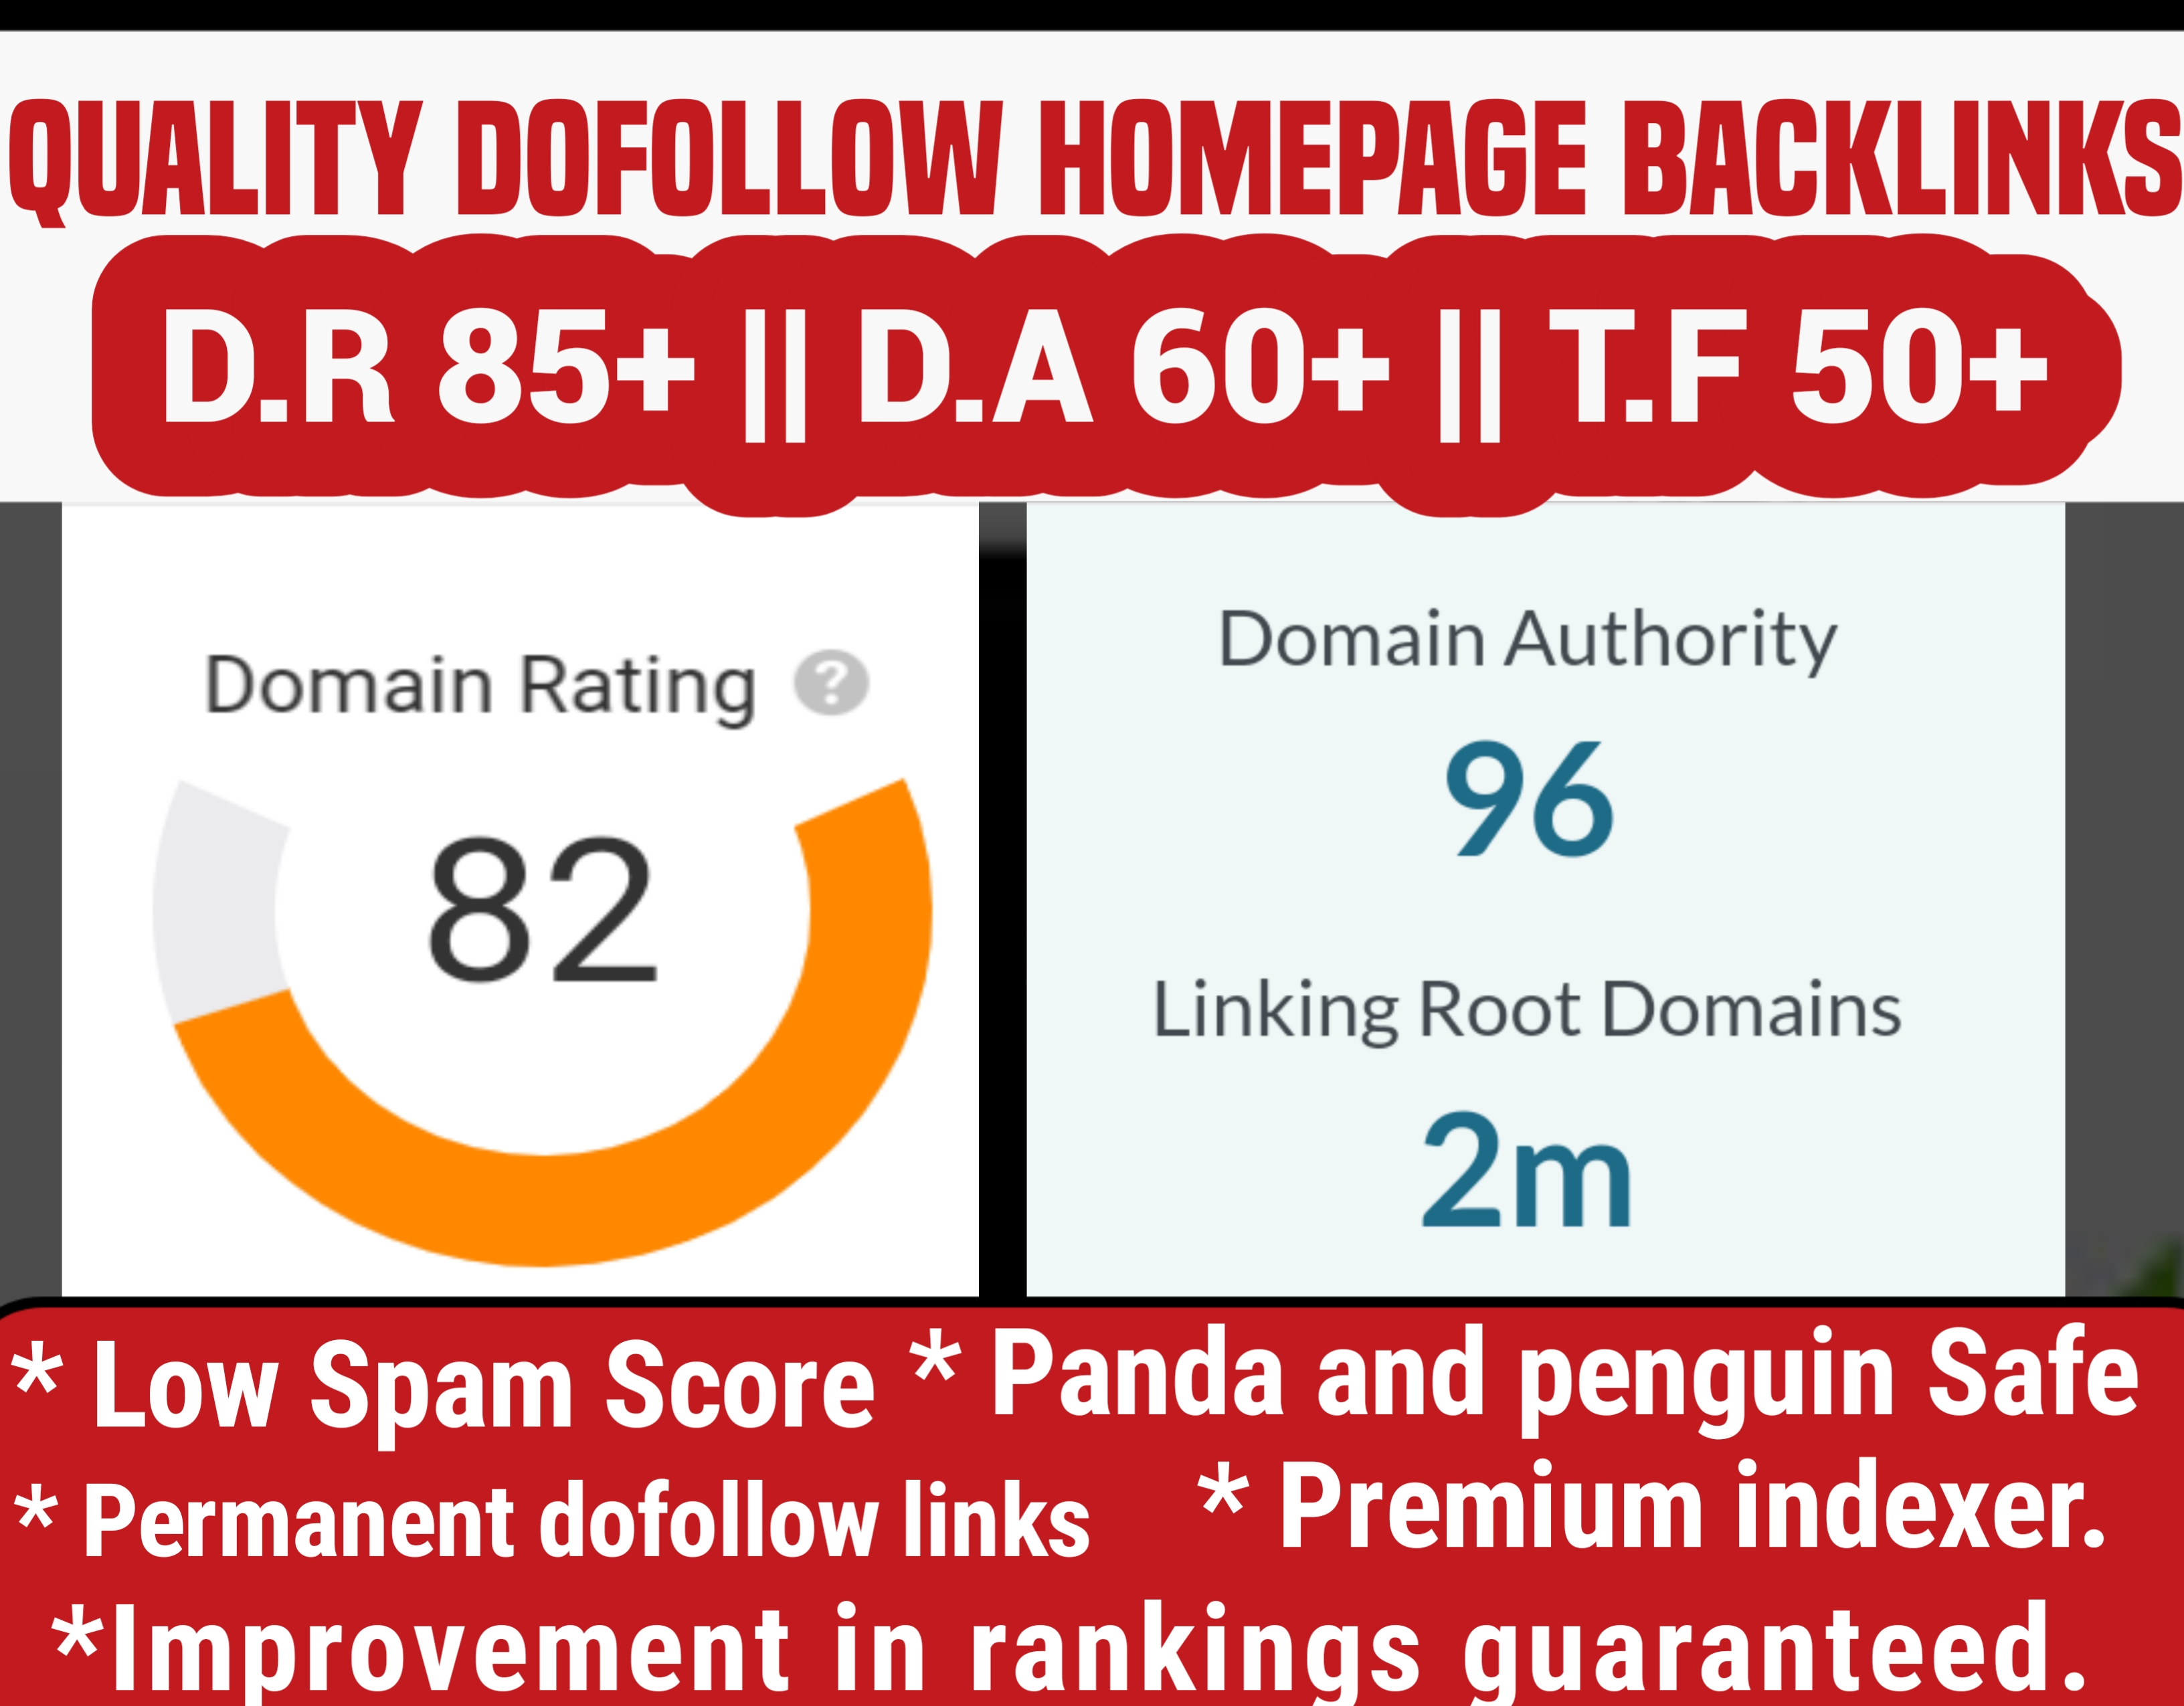 I will build 3 quality dofollow homepage backlinks from high D.A sites